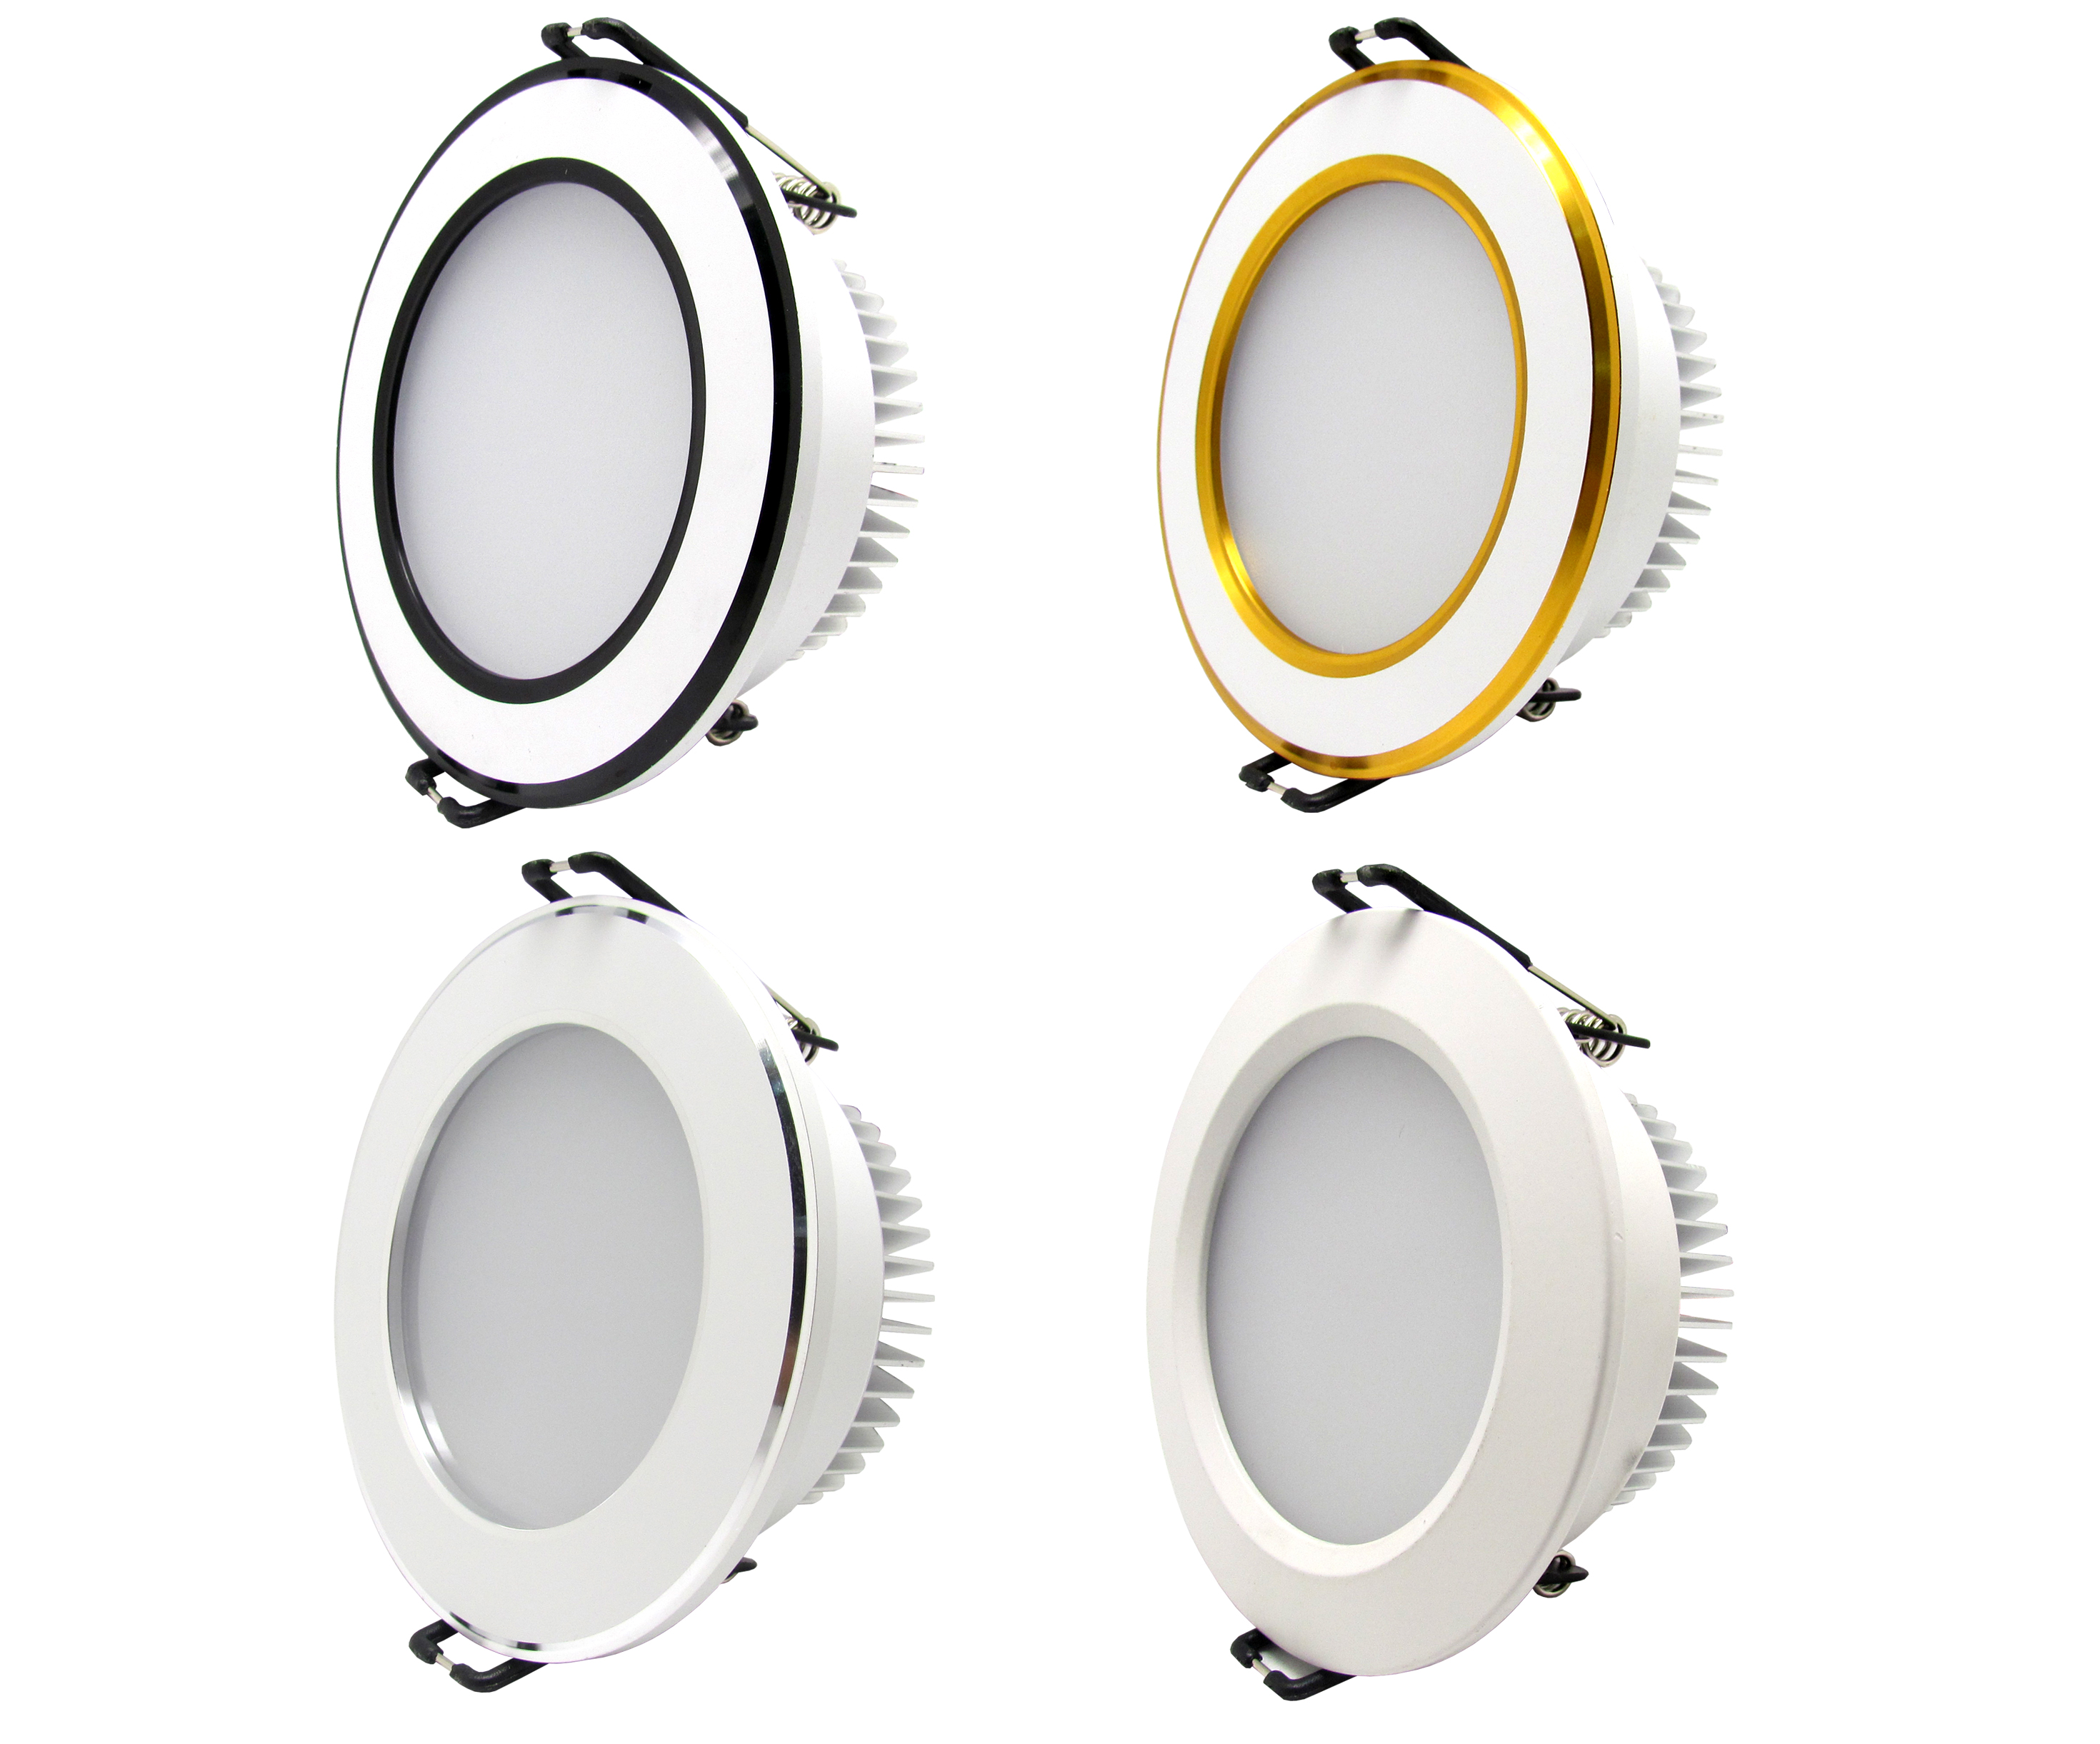 http://xyled.en.alibaba.com/product/1700260891-219675507/Beautiful_lamp_super_bright_high_lumen_led_downlight.html